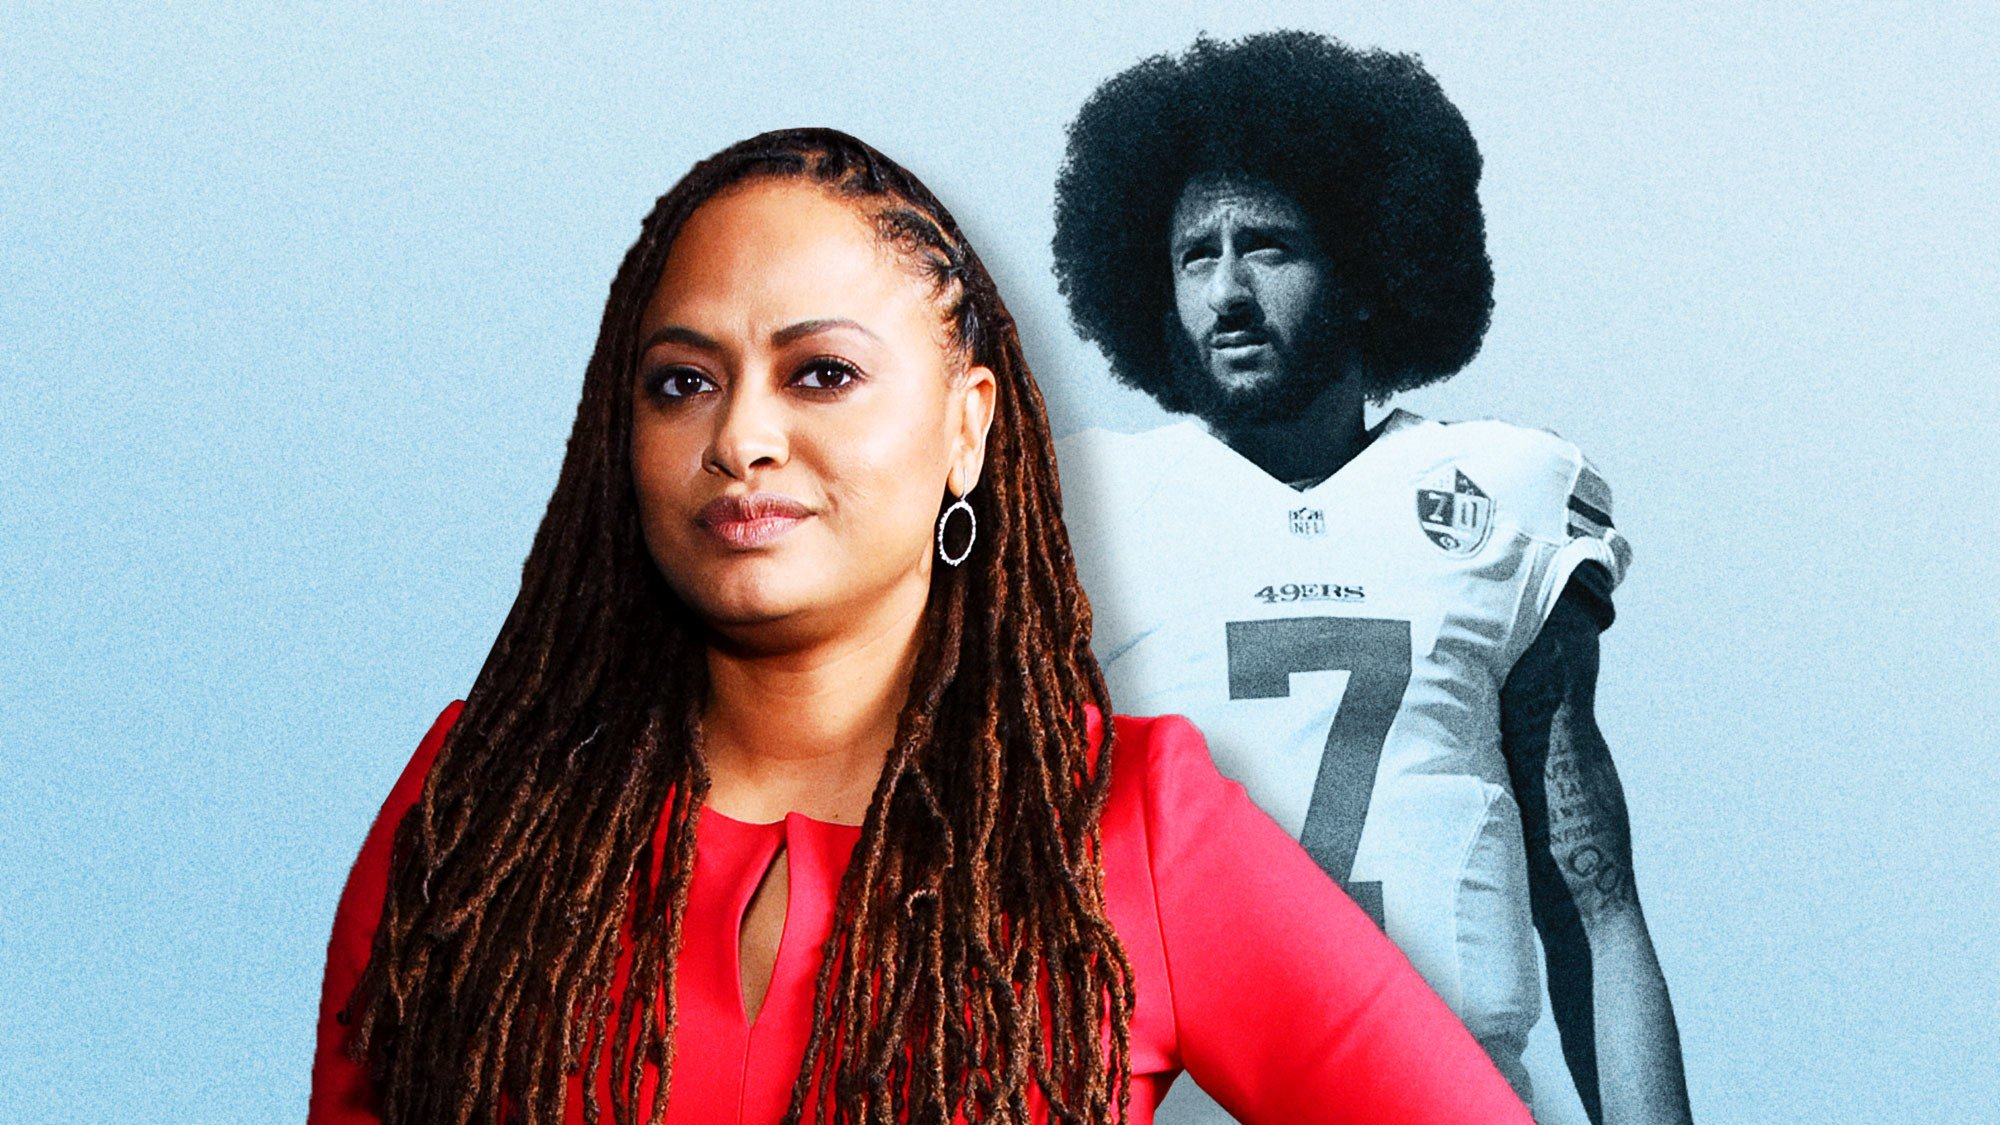 .@Ava on @Kaepernick7: 'His legacy will be one that we talk about for many years' https://t.co/07F4LyKNCj https://t.co/TH8brwEDTM